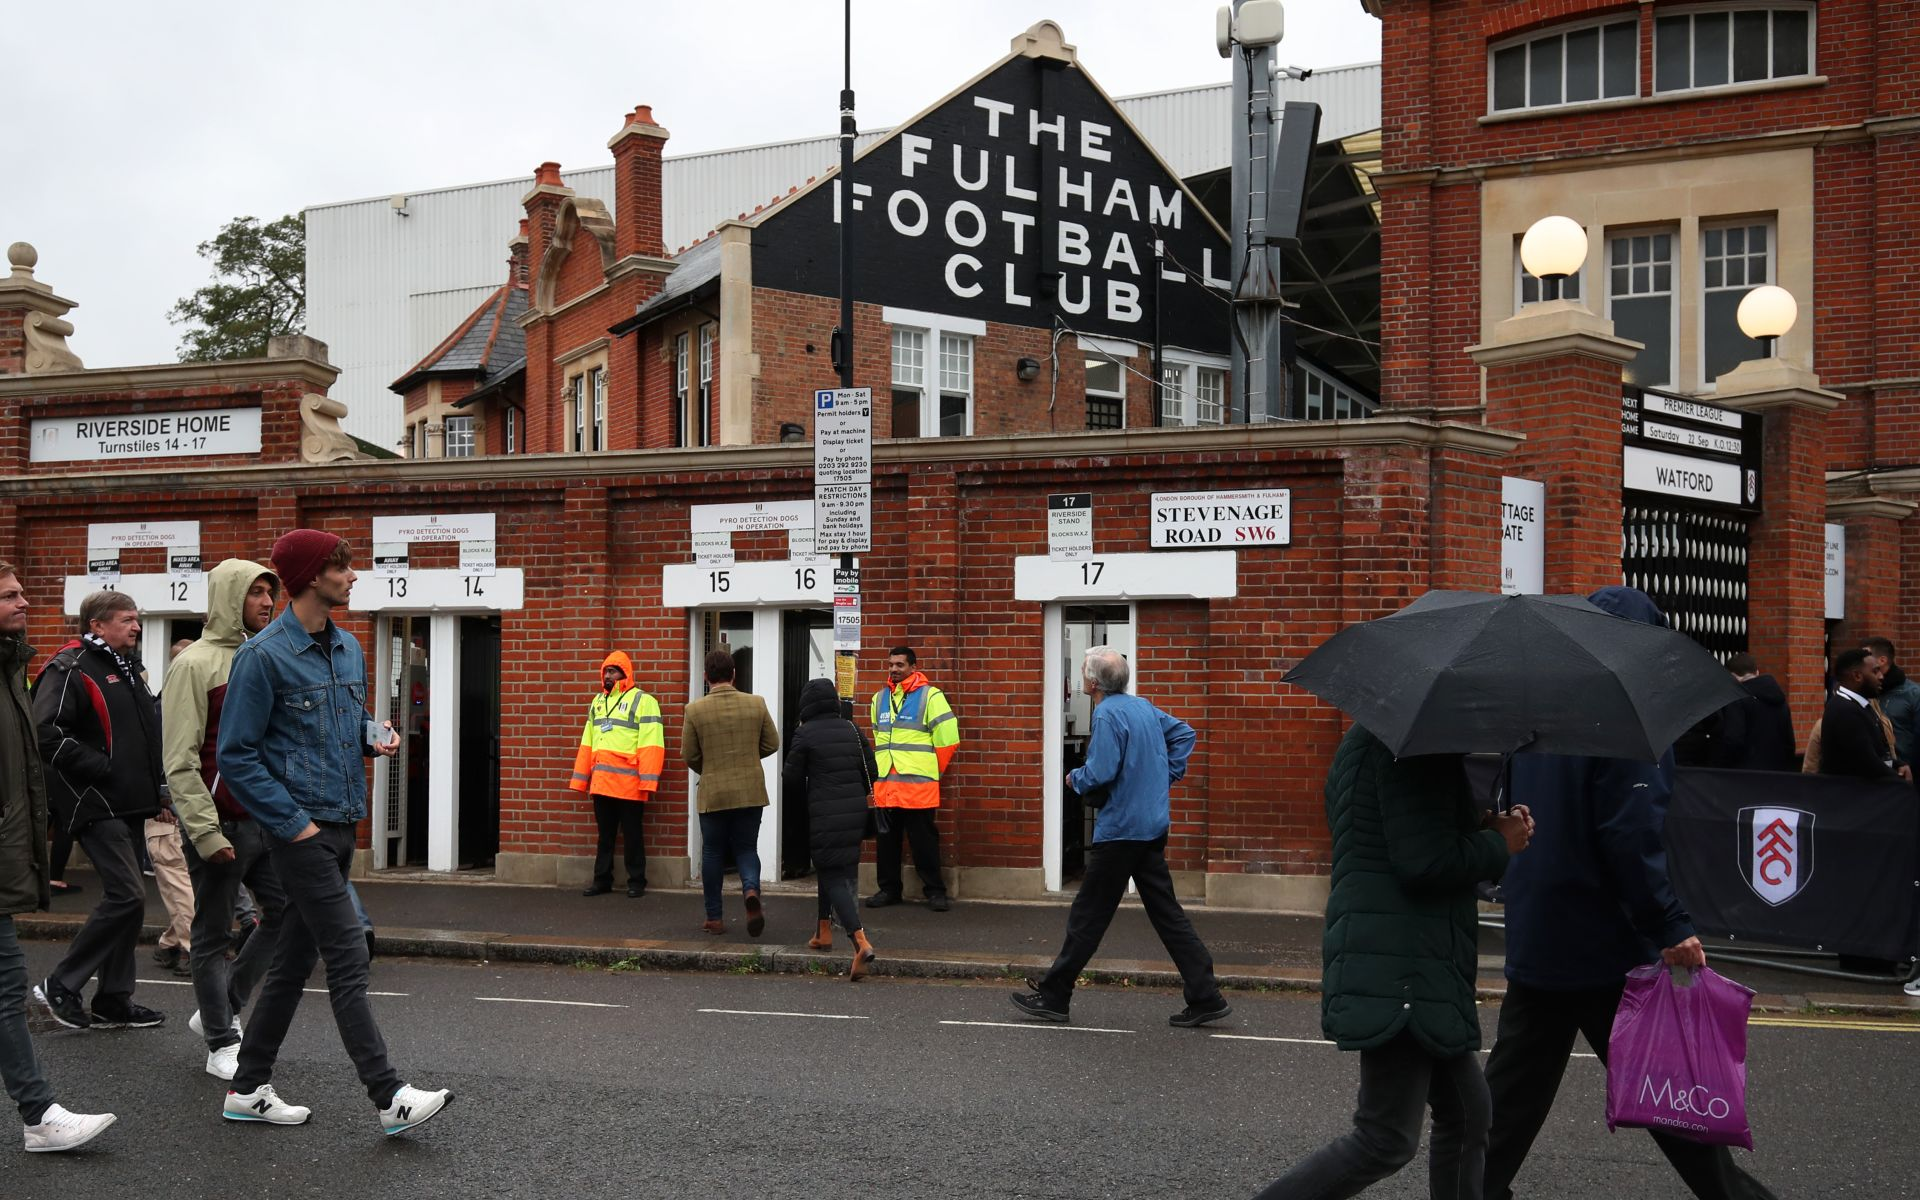 Fulham vs Manchester United betting first goalscorer odds